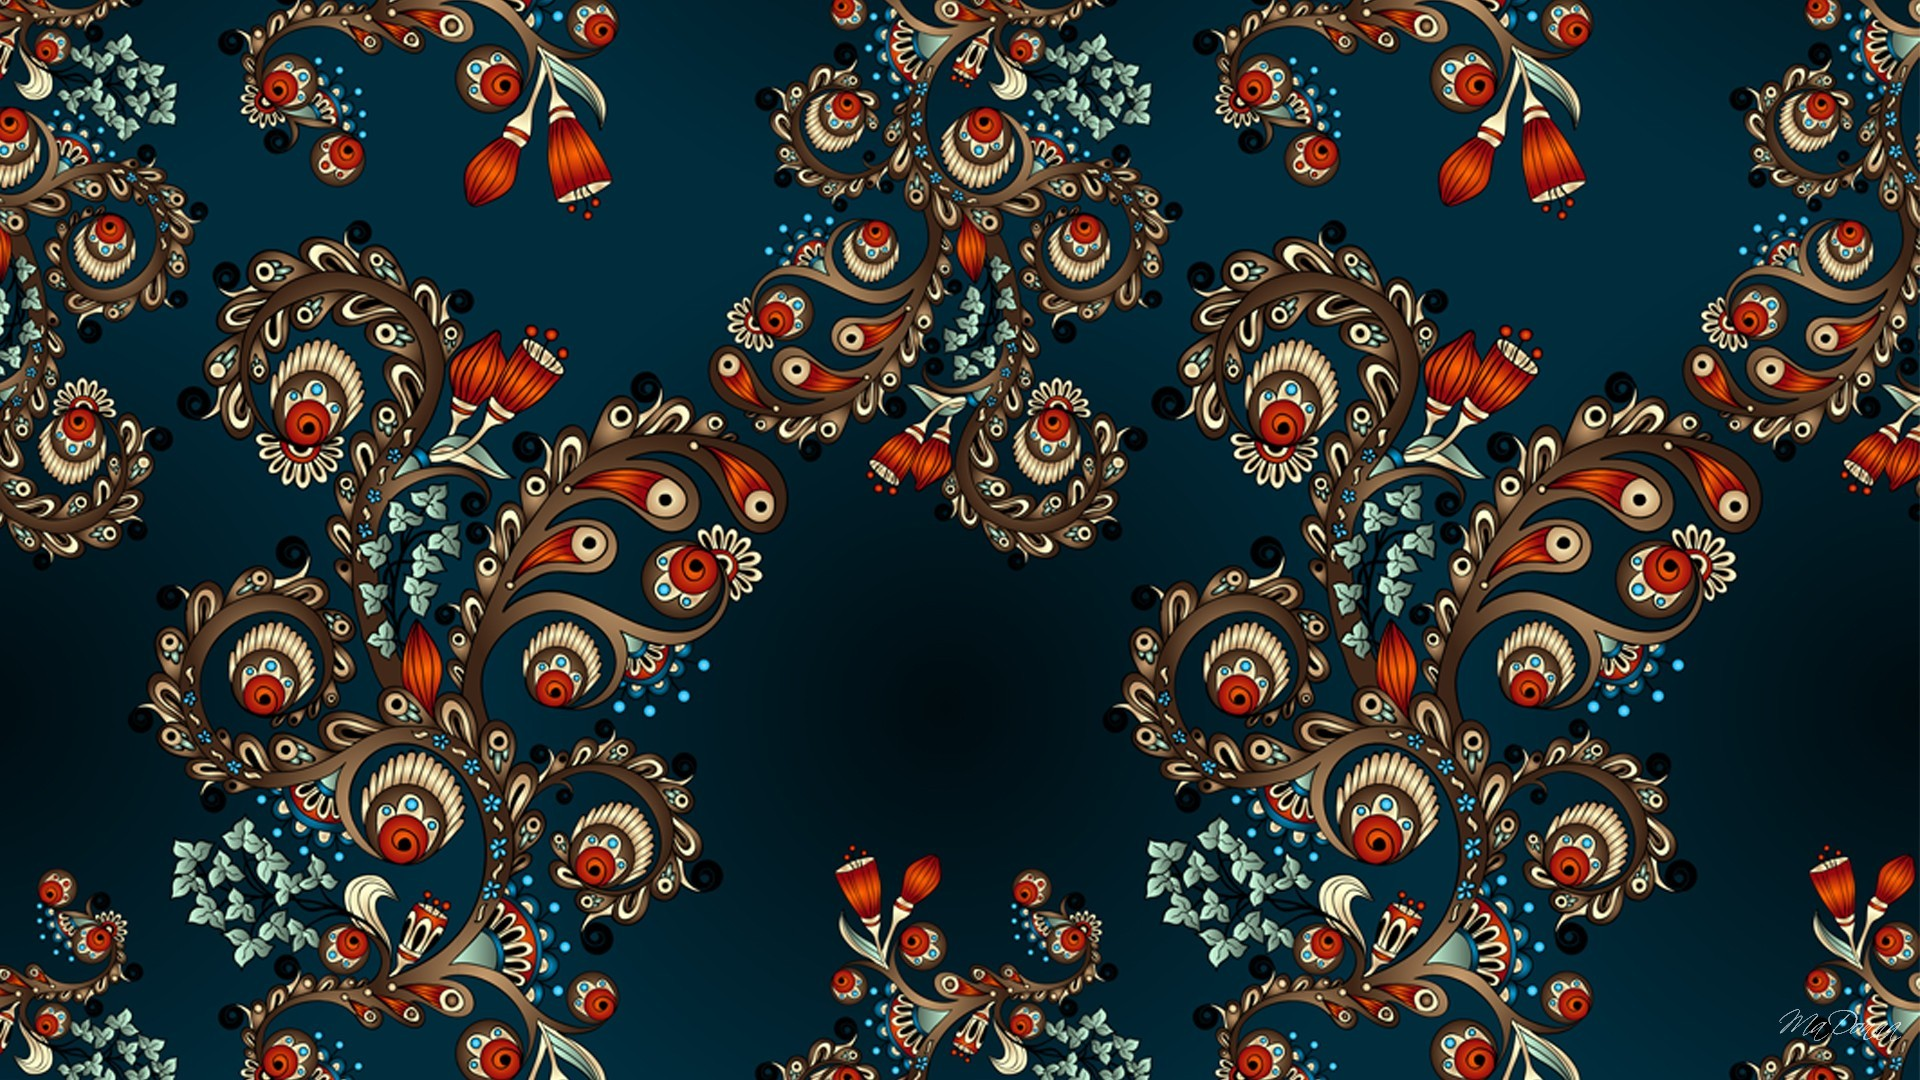 Paisley Wallpaper 183 ① Download Free Stunning Hd Wallpapers